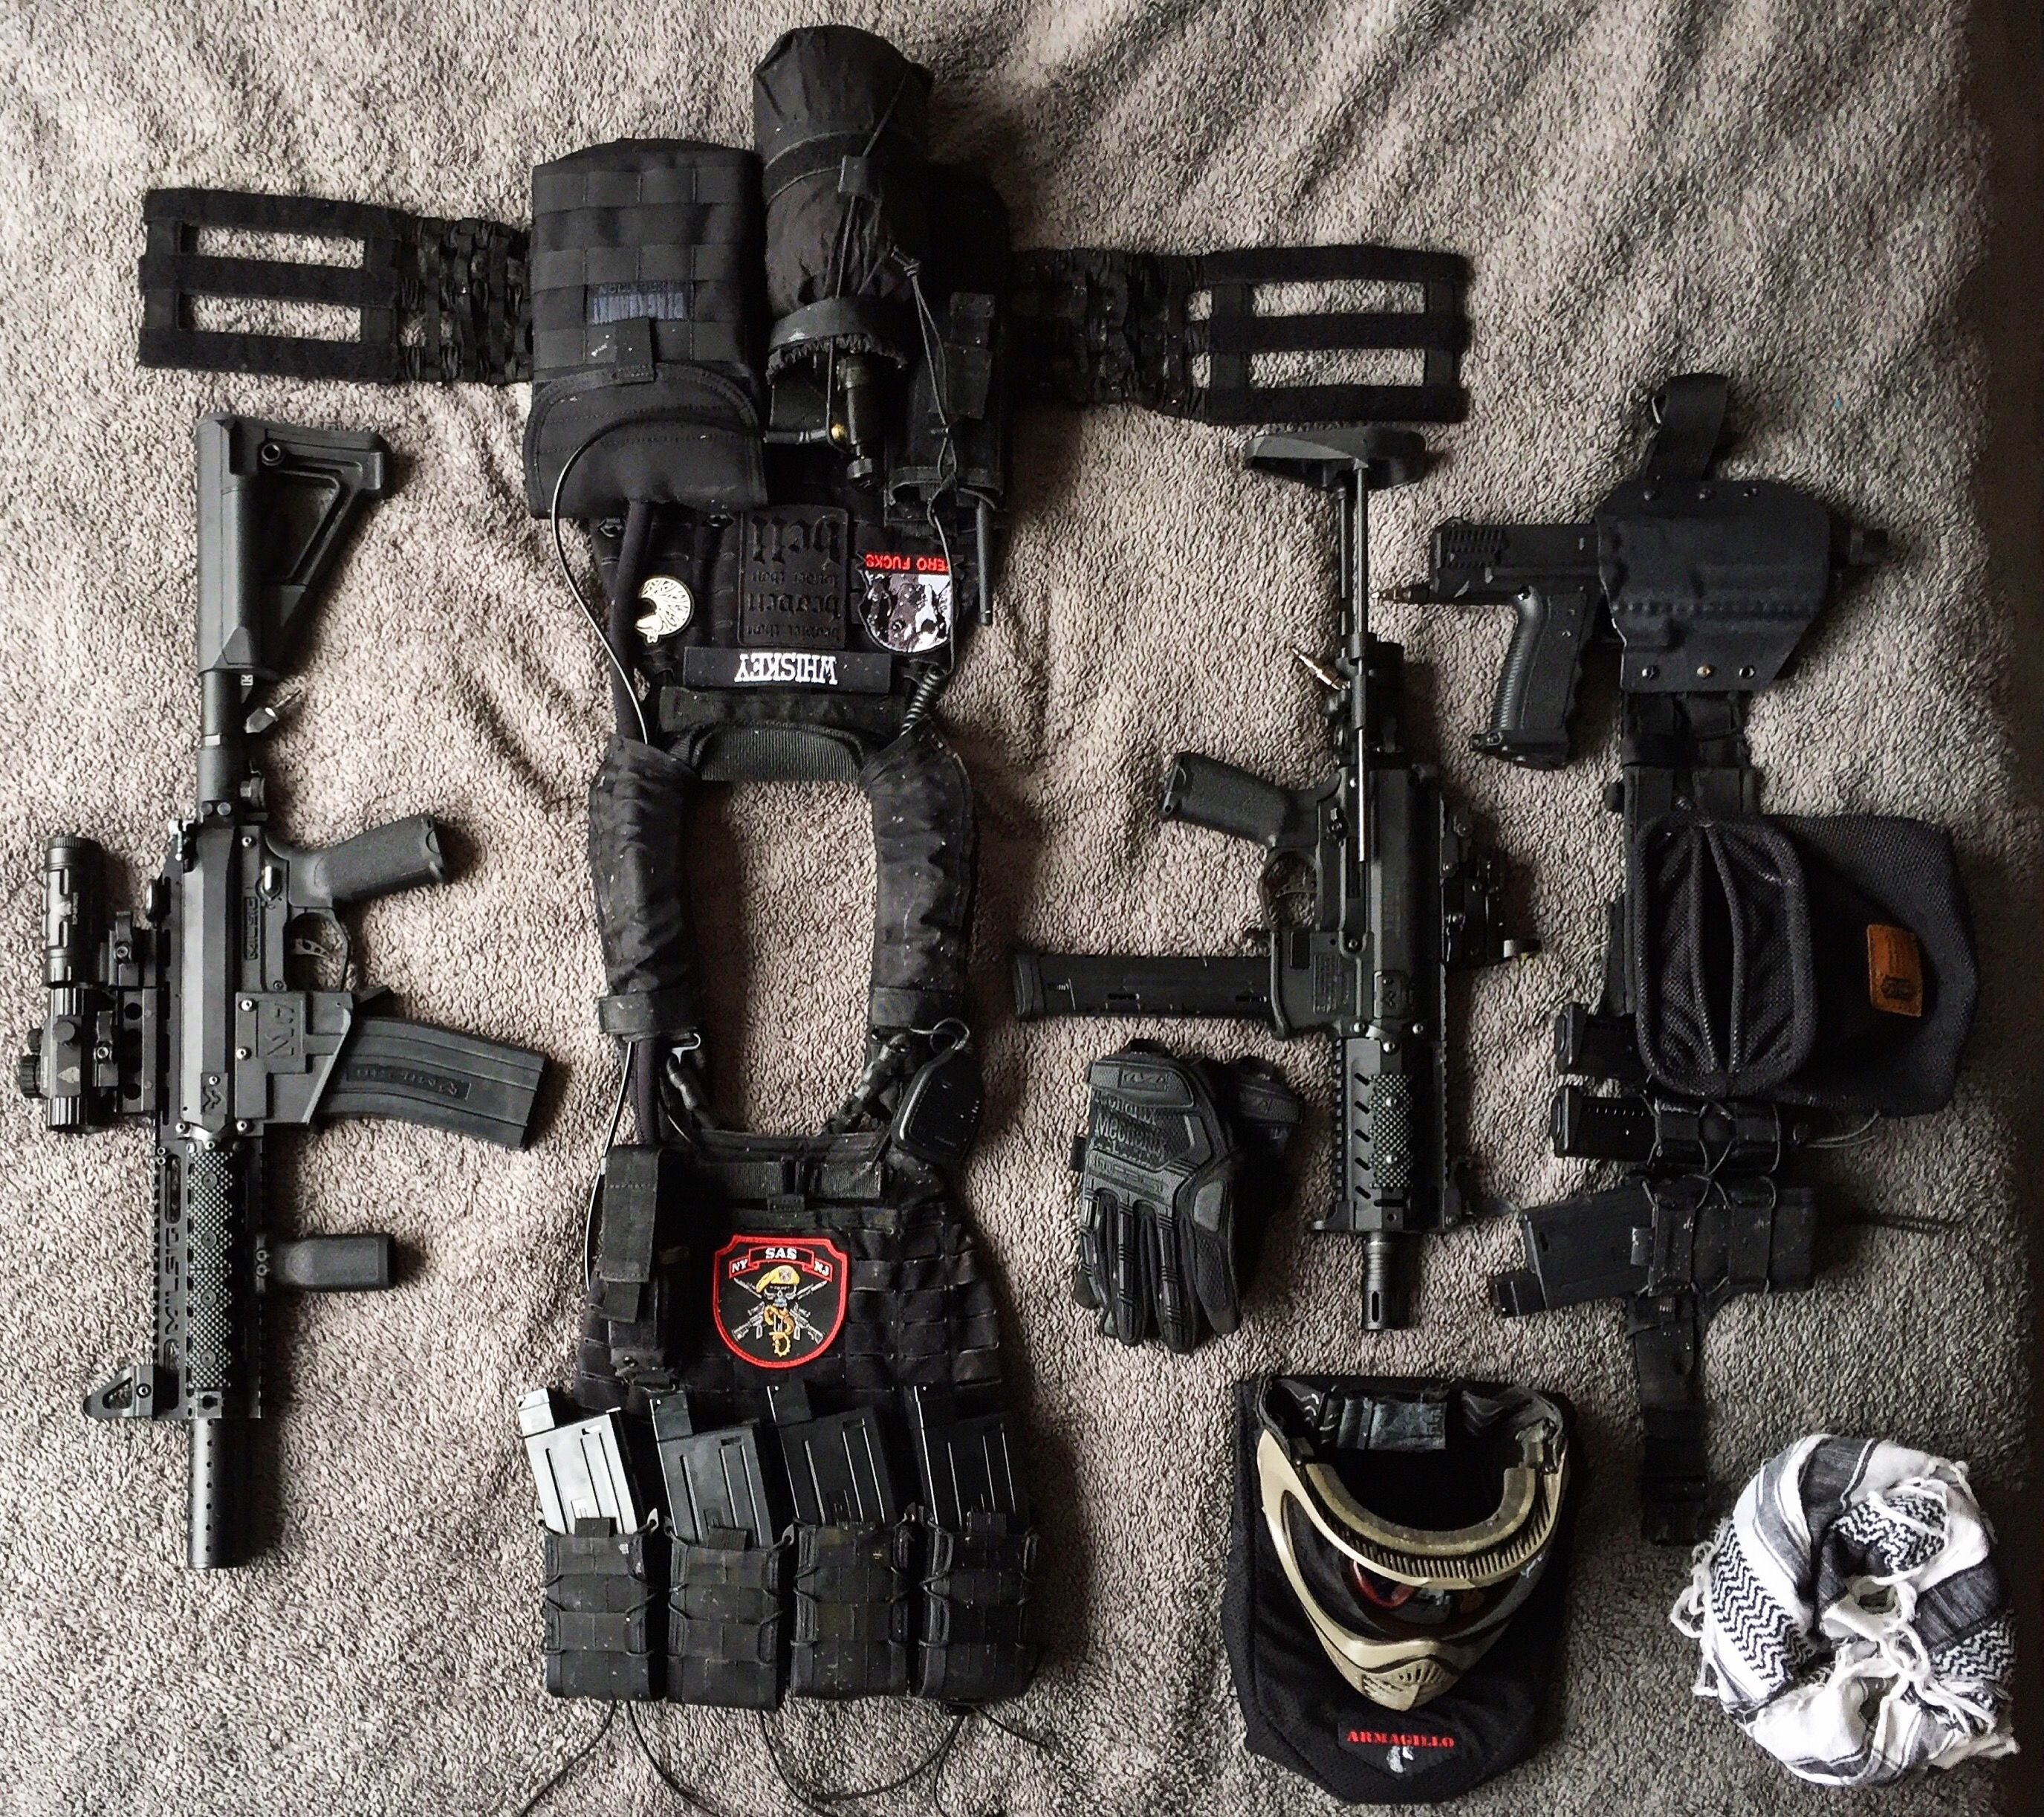 Full Paintball Loadout - 5 11 Tactec Plate Carrier, Milsig M17